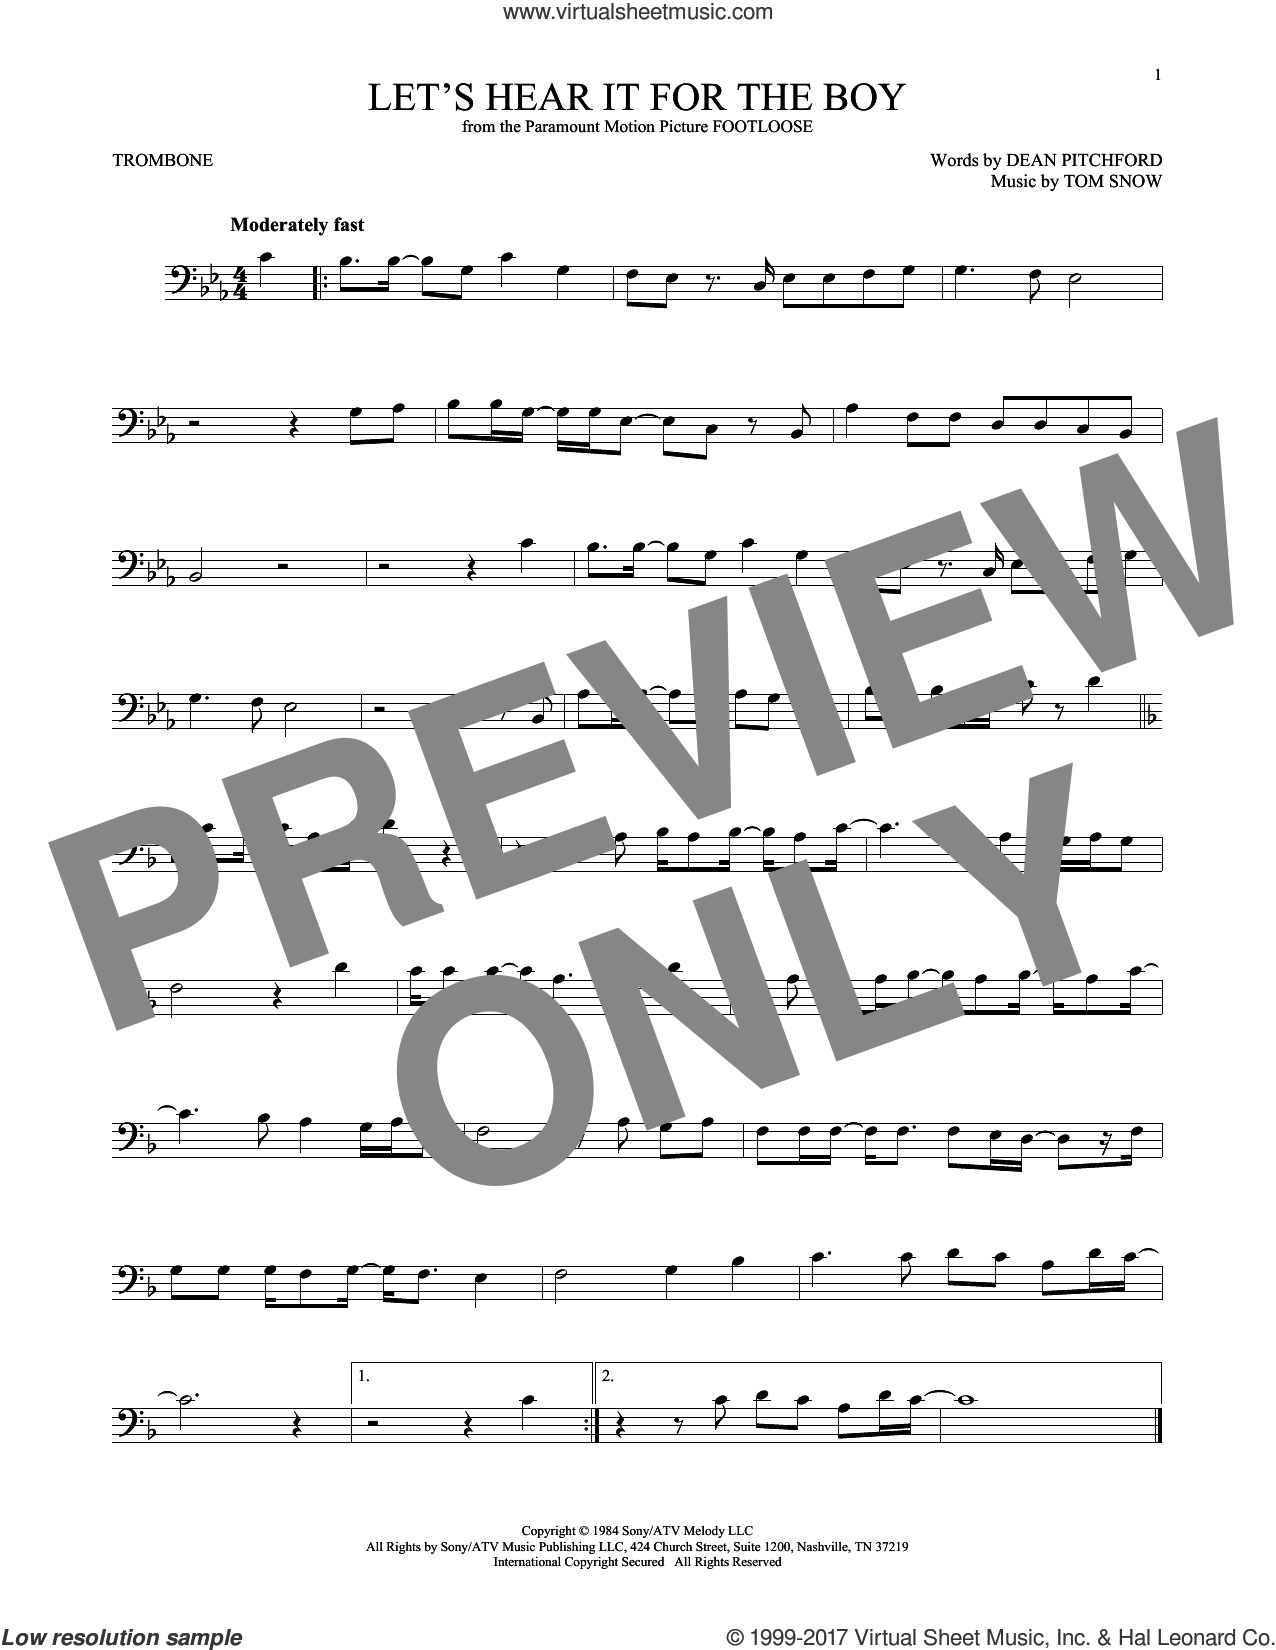 Let's Hear It For The Boy sheet music for trombone solo by Deniece Williams, Dean Pitchford and Tom Snow, intermediate skill level